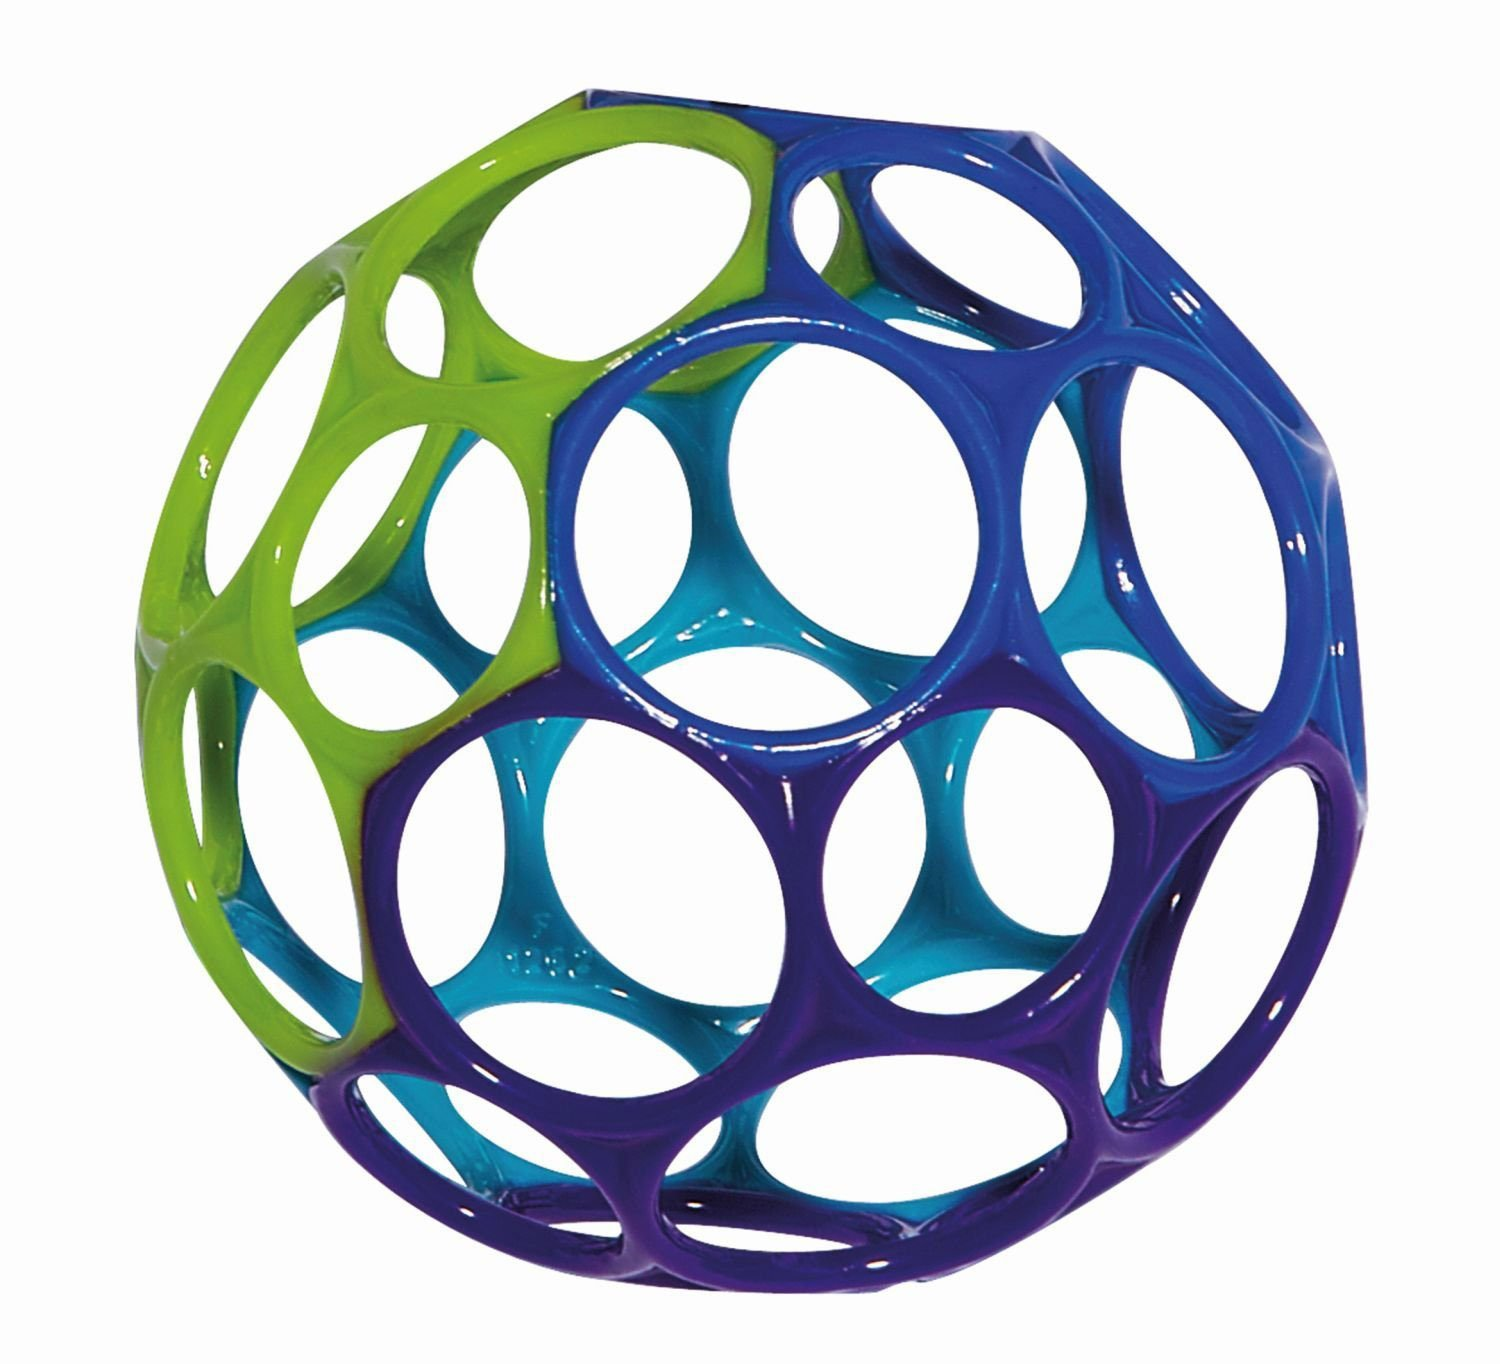 Oball Toy Ball, Multicolored, Assorted by Oball (Image #6)